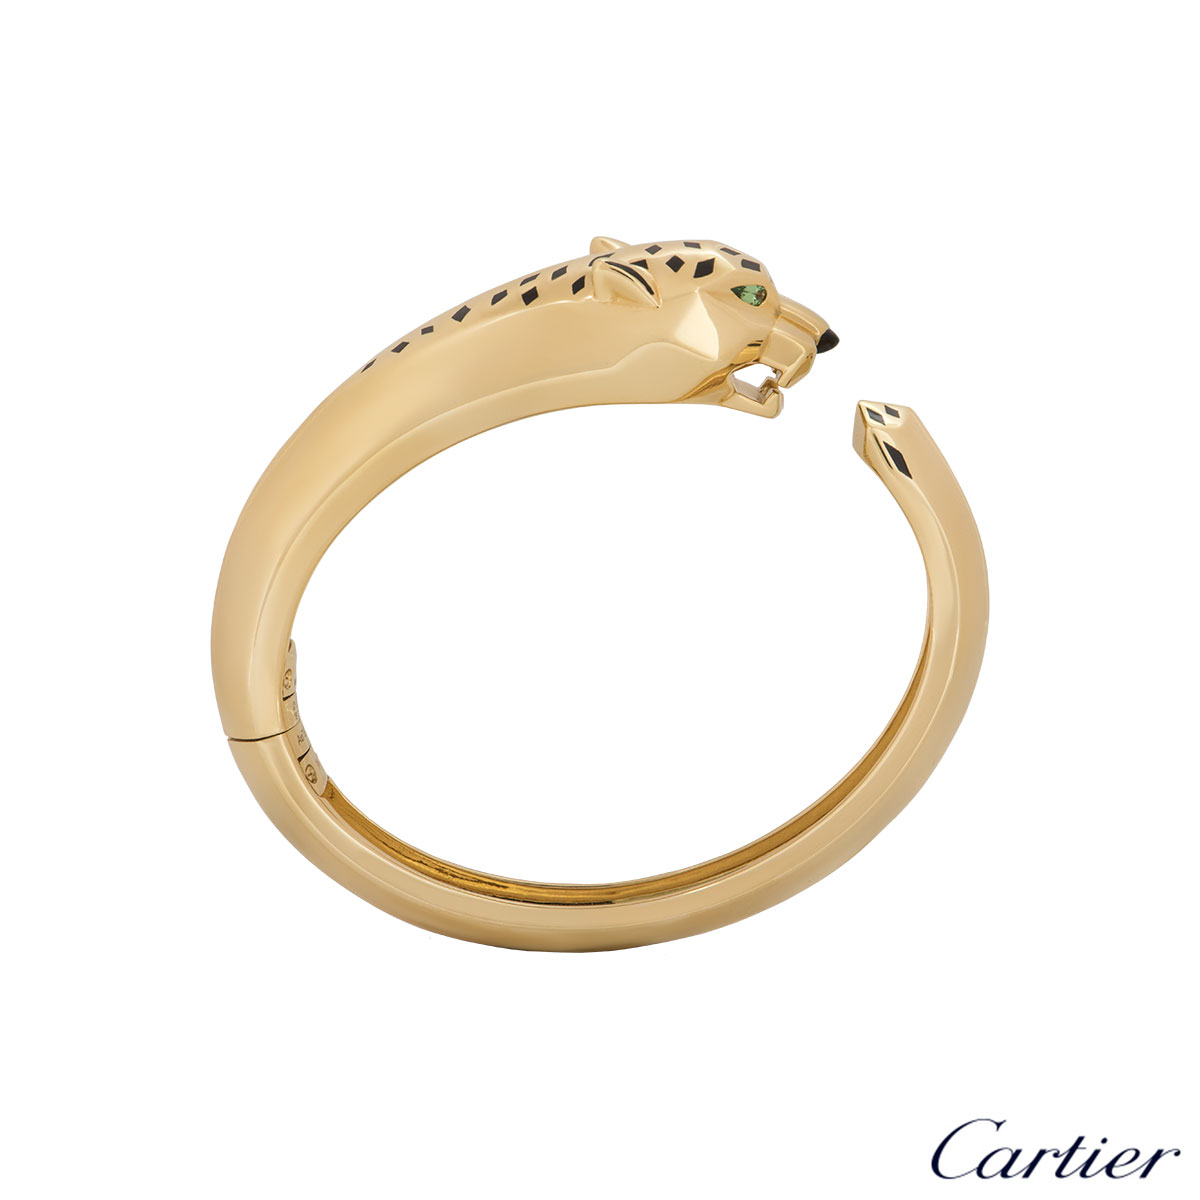 Cartier Yellow Gold Panthere De Cartier Bracelet N6033403